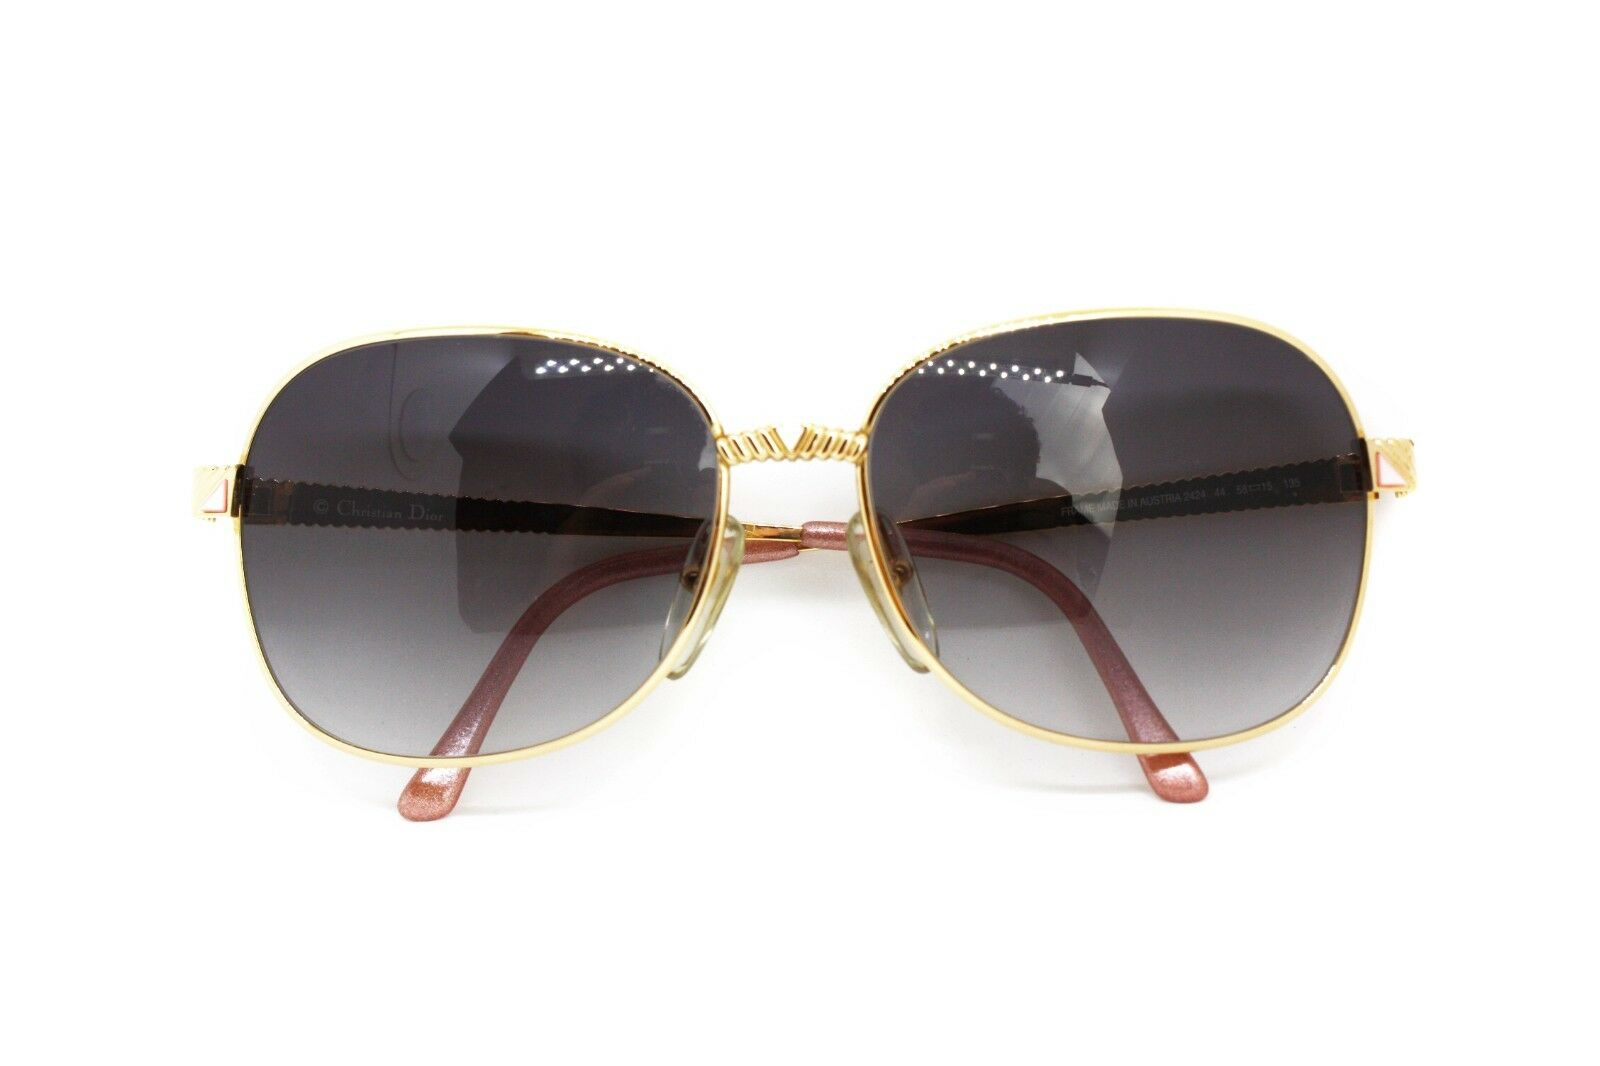 Oversized Womens Sunglasses Christian Dior 2424 Gold and Triangular Inserts, Pink-show original title